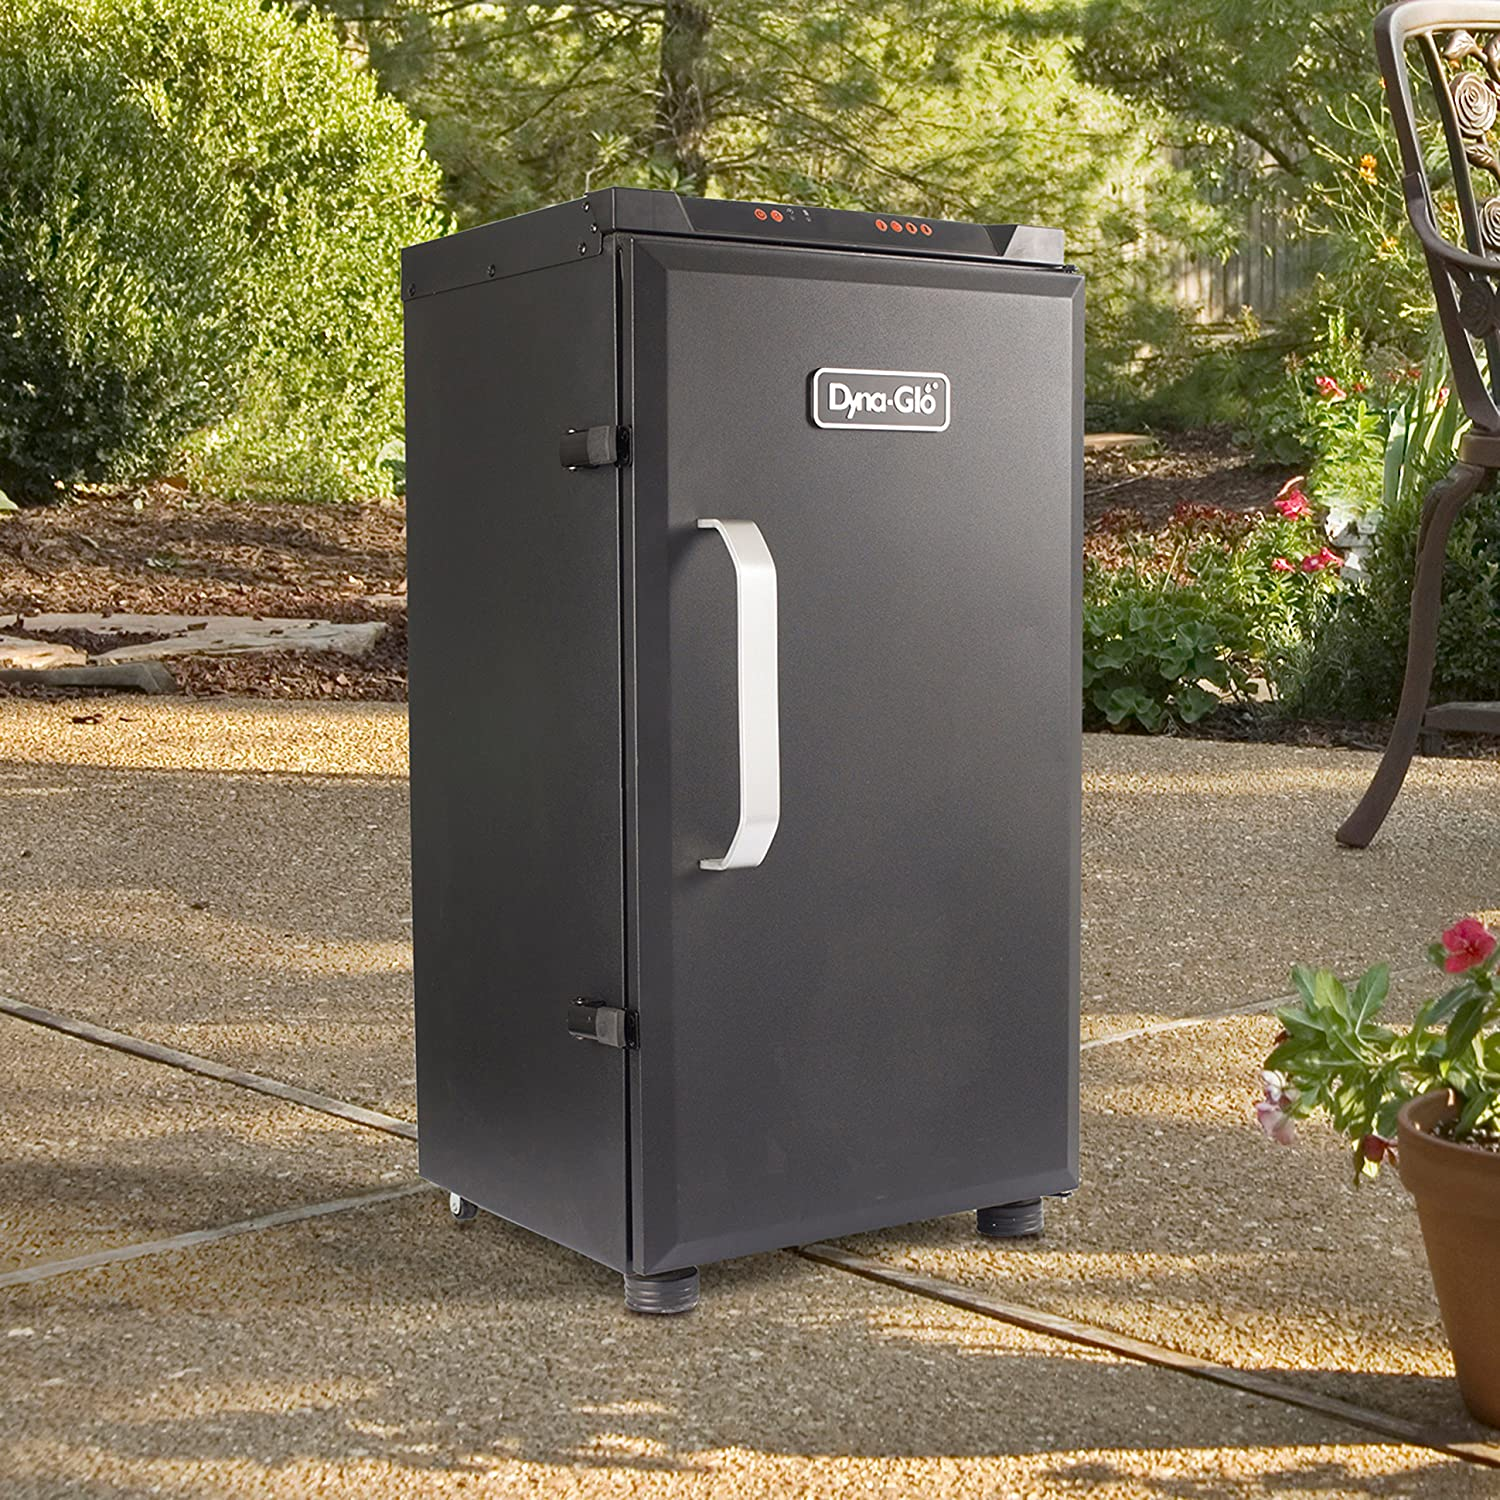 Dyna-Glo electric smoker reviews